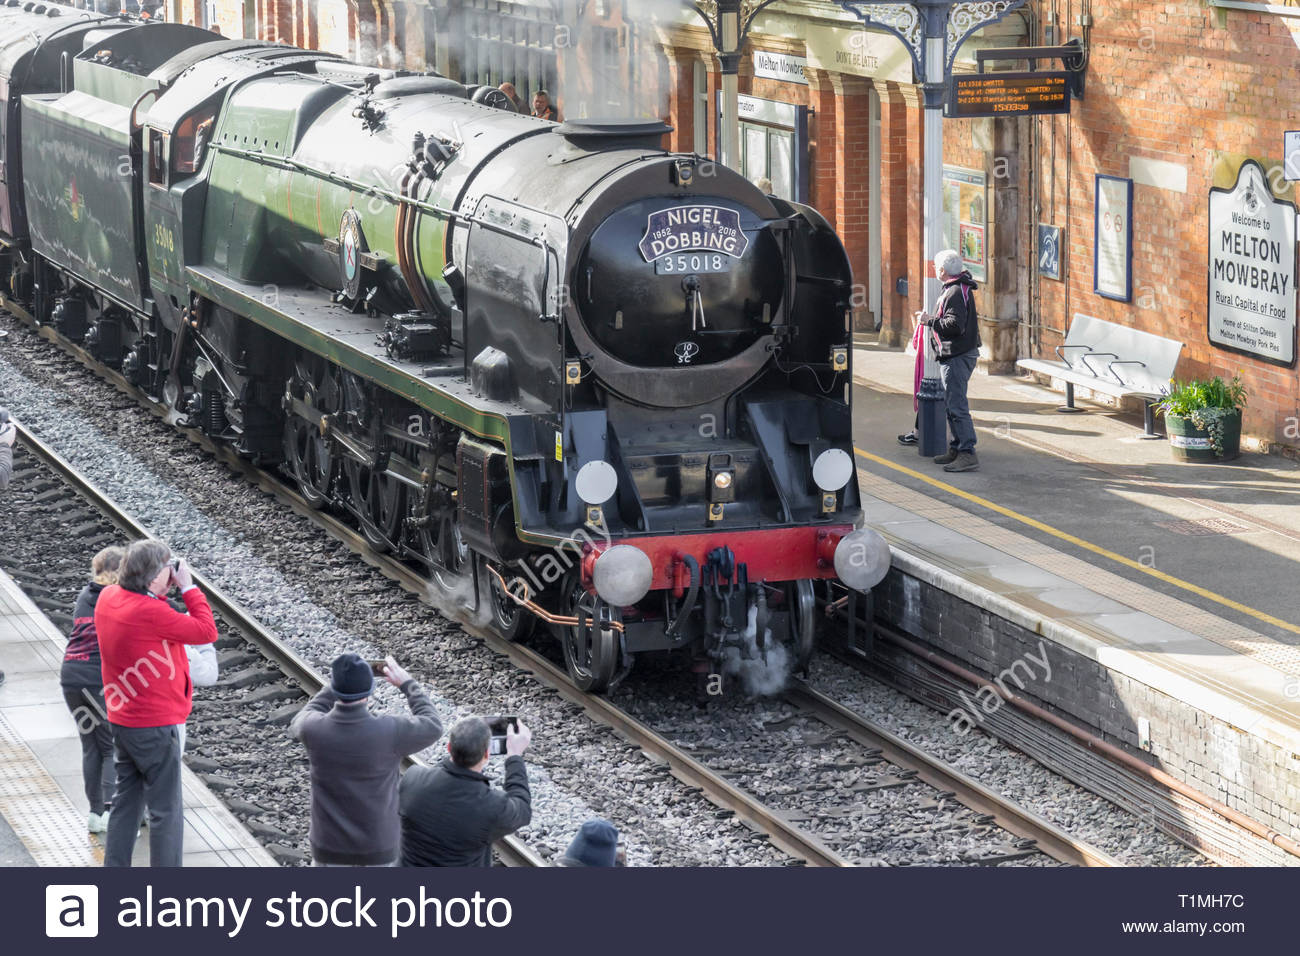 Merchant Navy Class 35018 steam train ready to depart Melton Mowbray to Kings Lynn, remembering Nigel Dobbing founder of The Railway touring company. - Stock Image